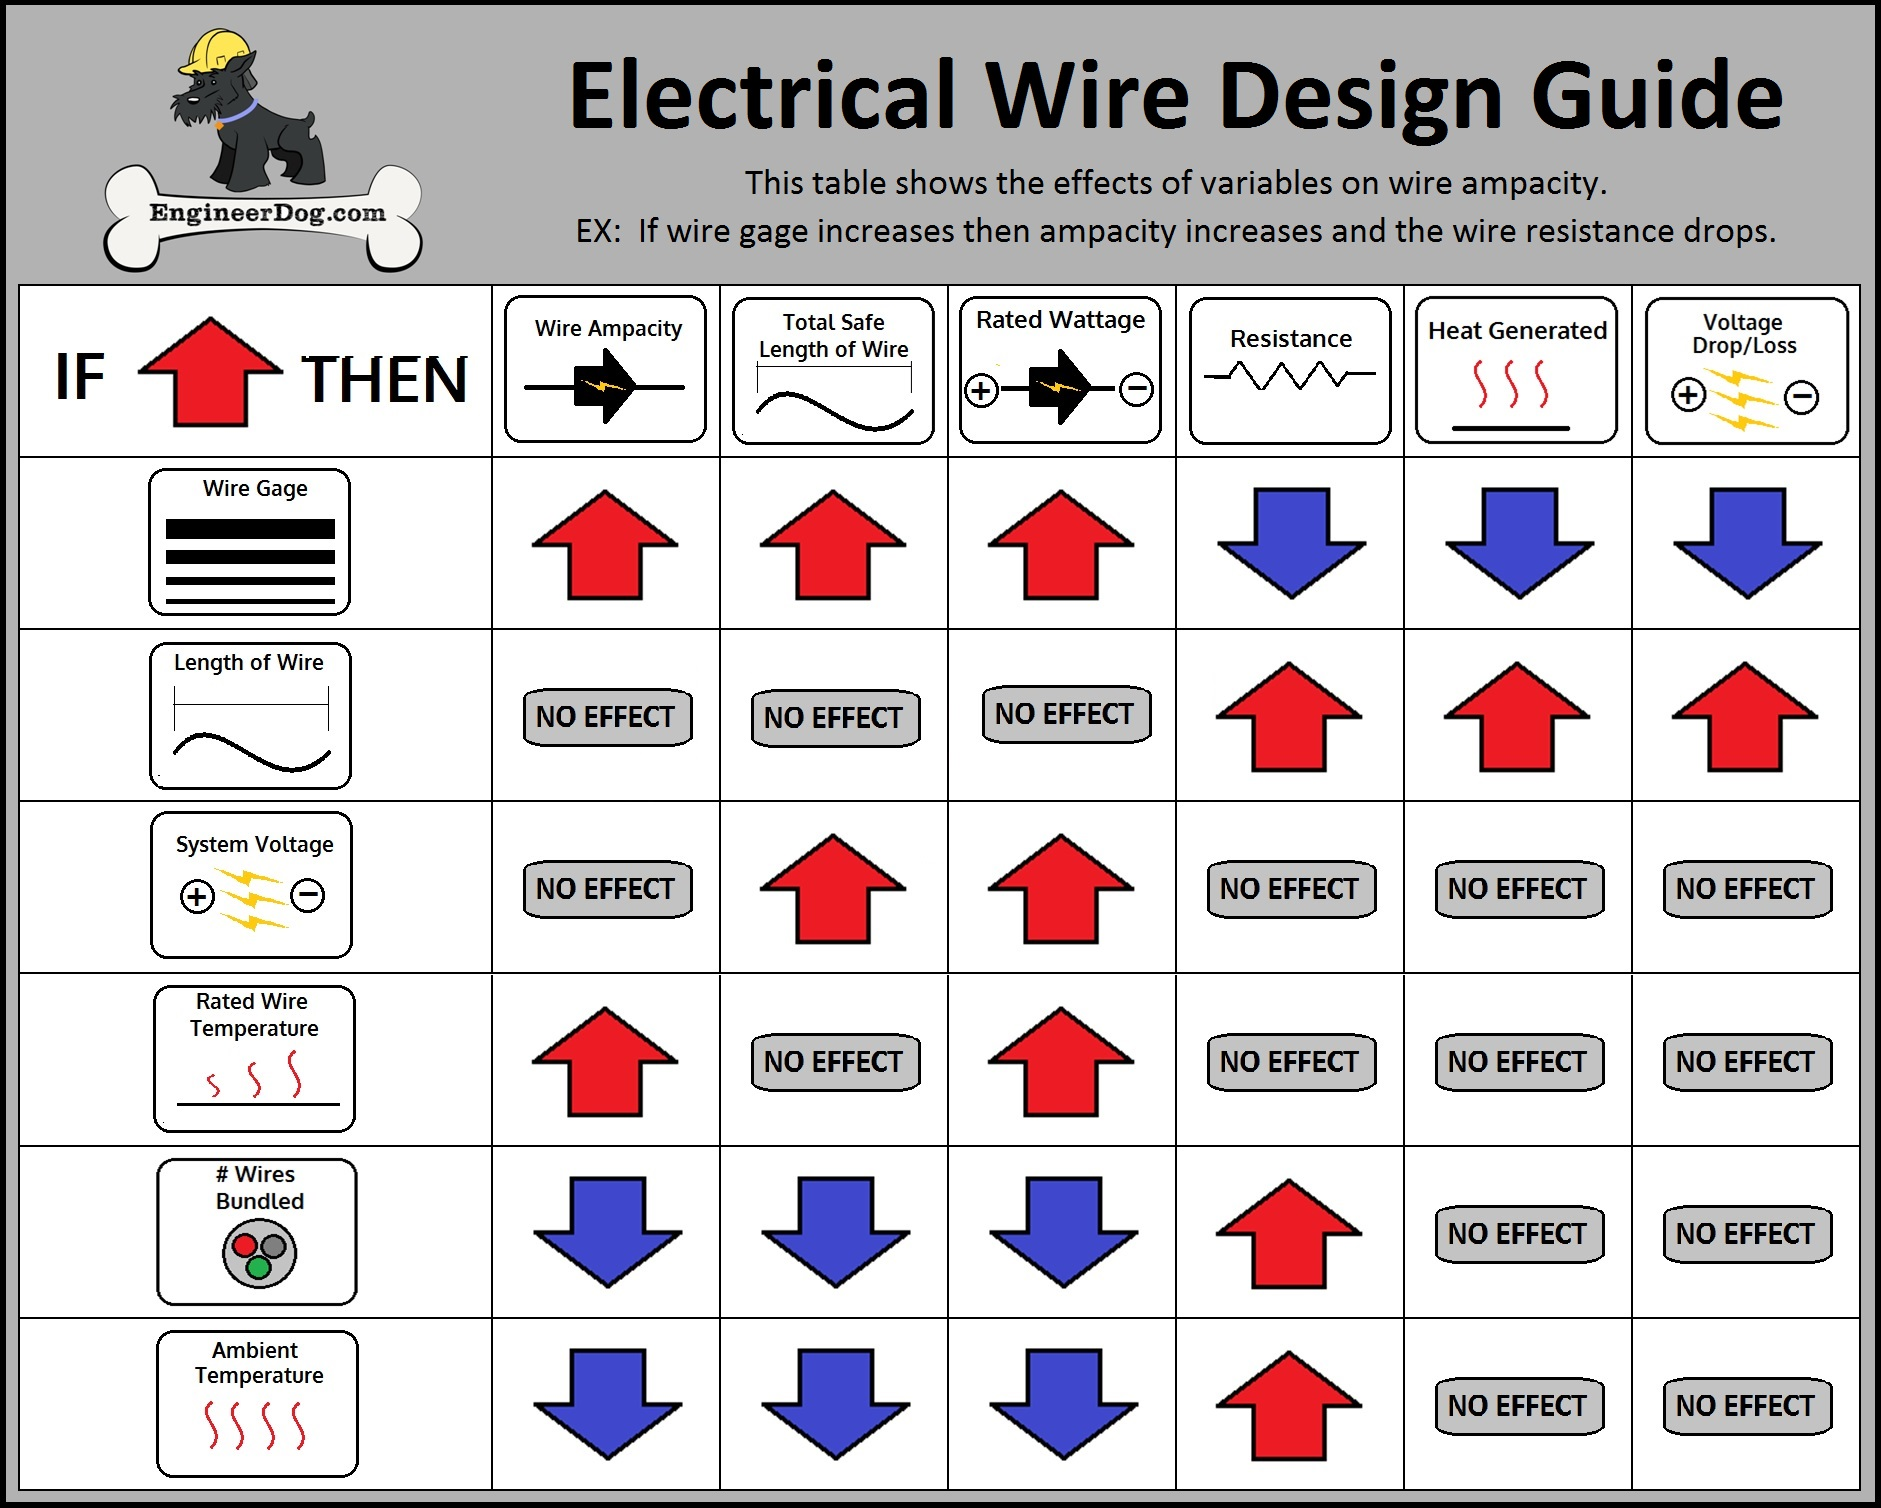 Electronic wire gauge wiring info free electrical wire gauge sizing calculator engineerdog rh engineerdog com electric wire gauge diameter chart electric greentooth